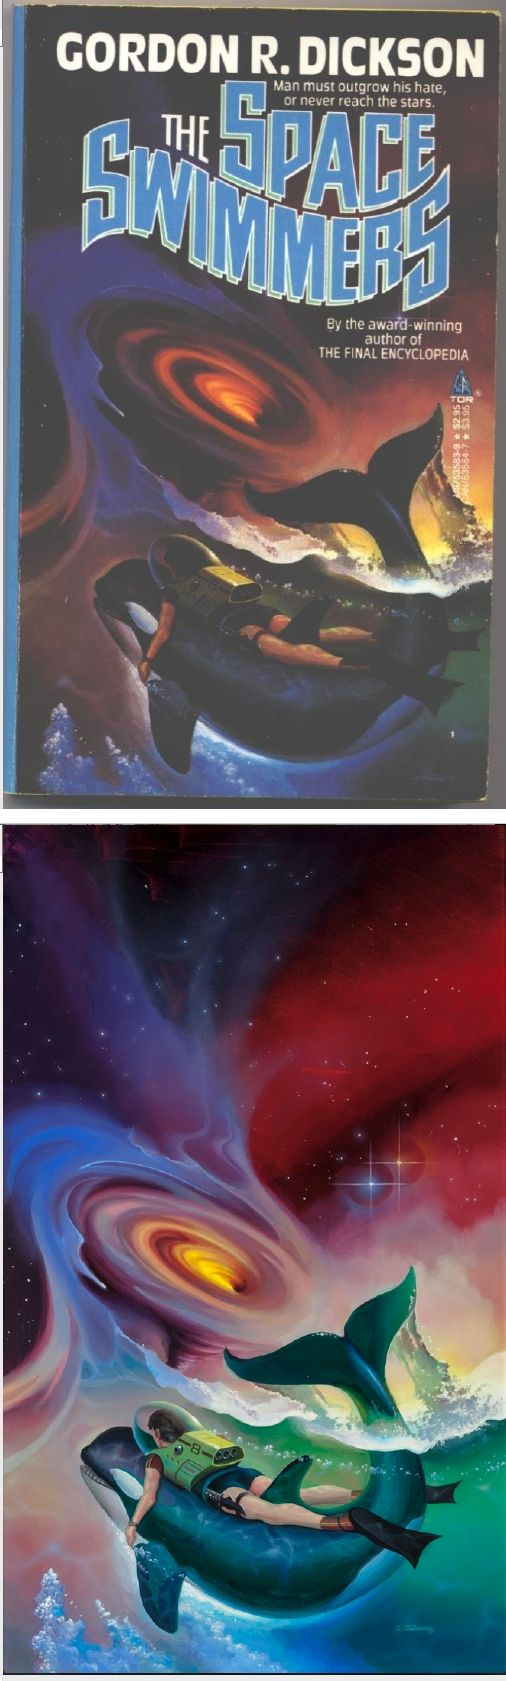 Watercolor book covers - Alan Gutierrez The Space Swimmers By Gordon R Dickson 1987 Tor Books